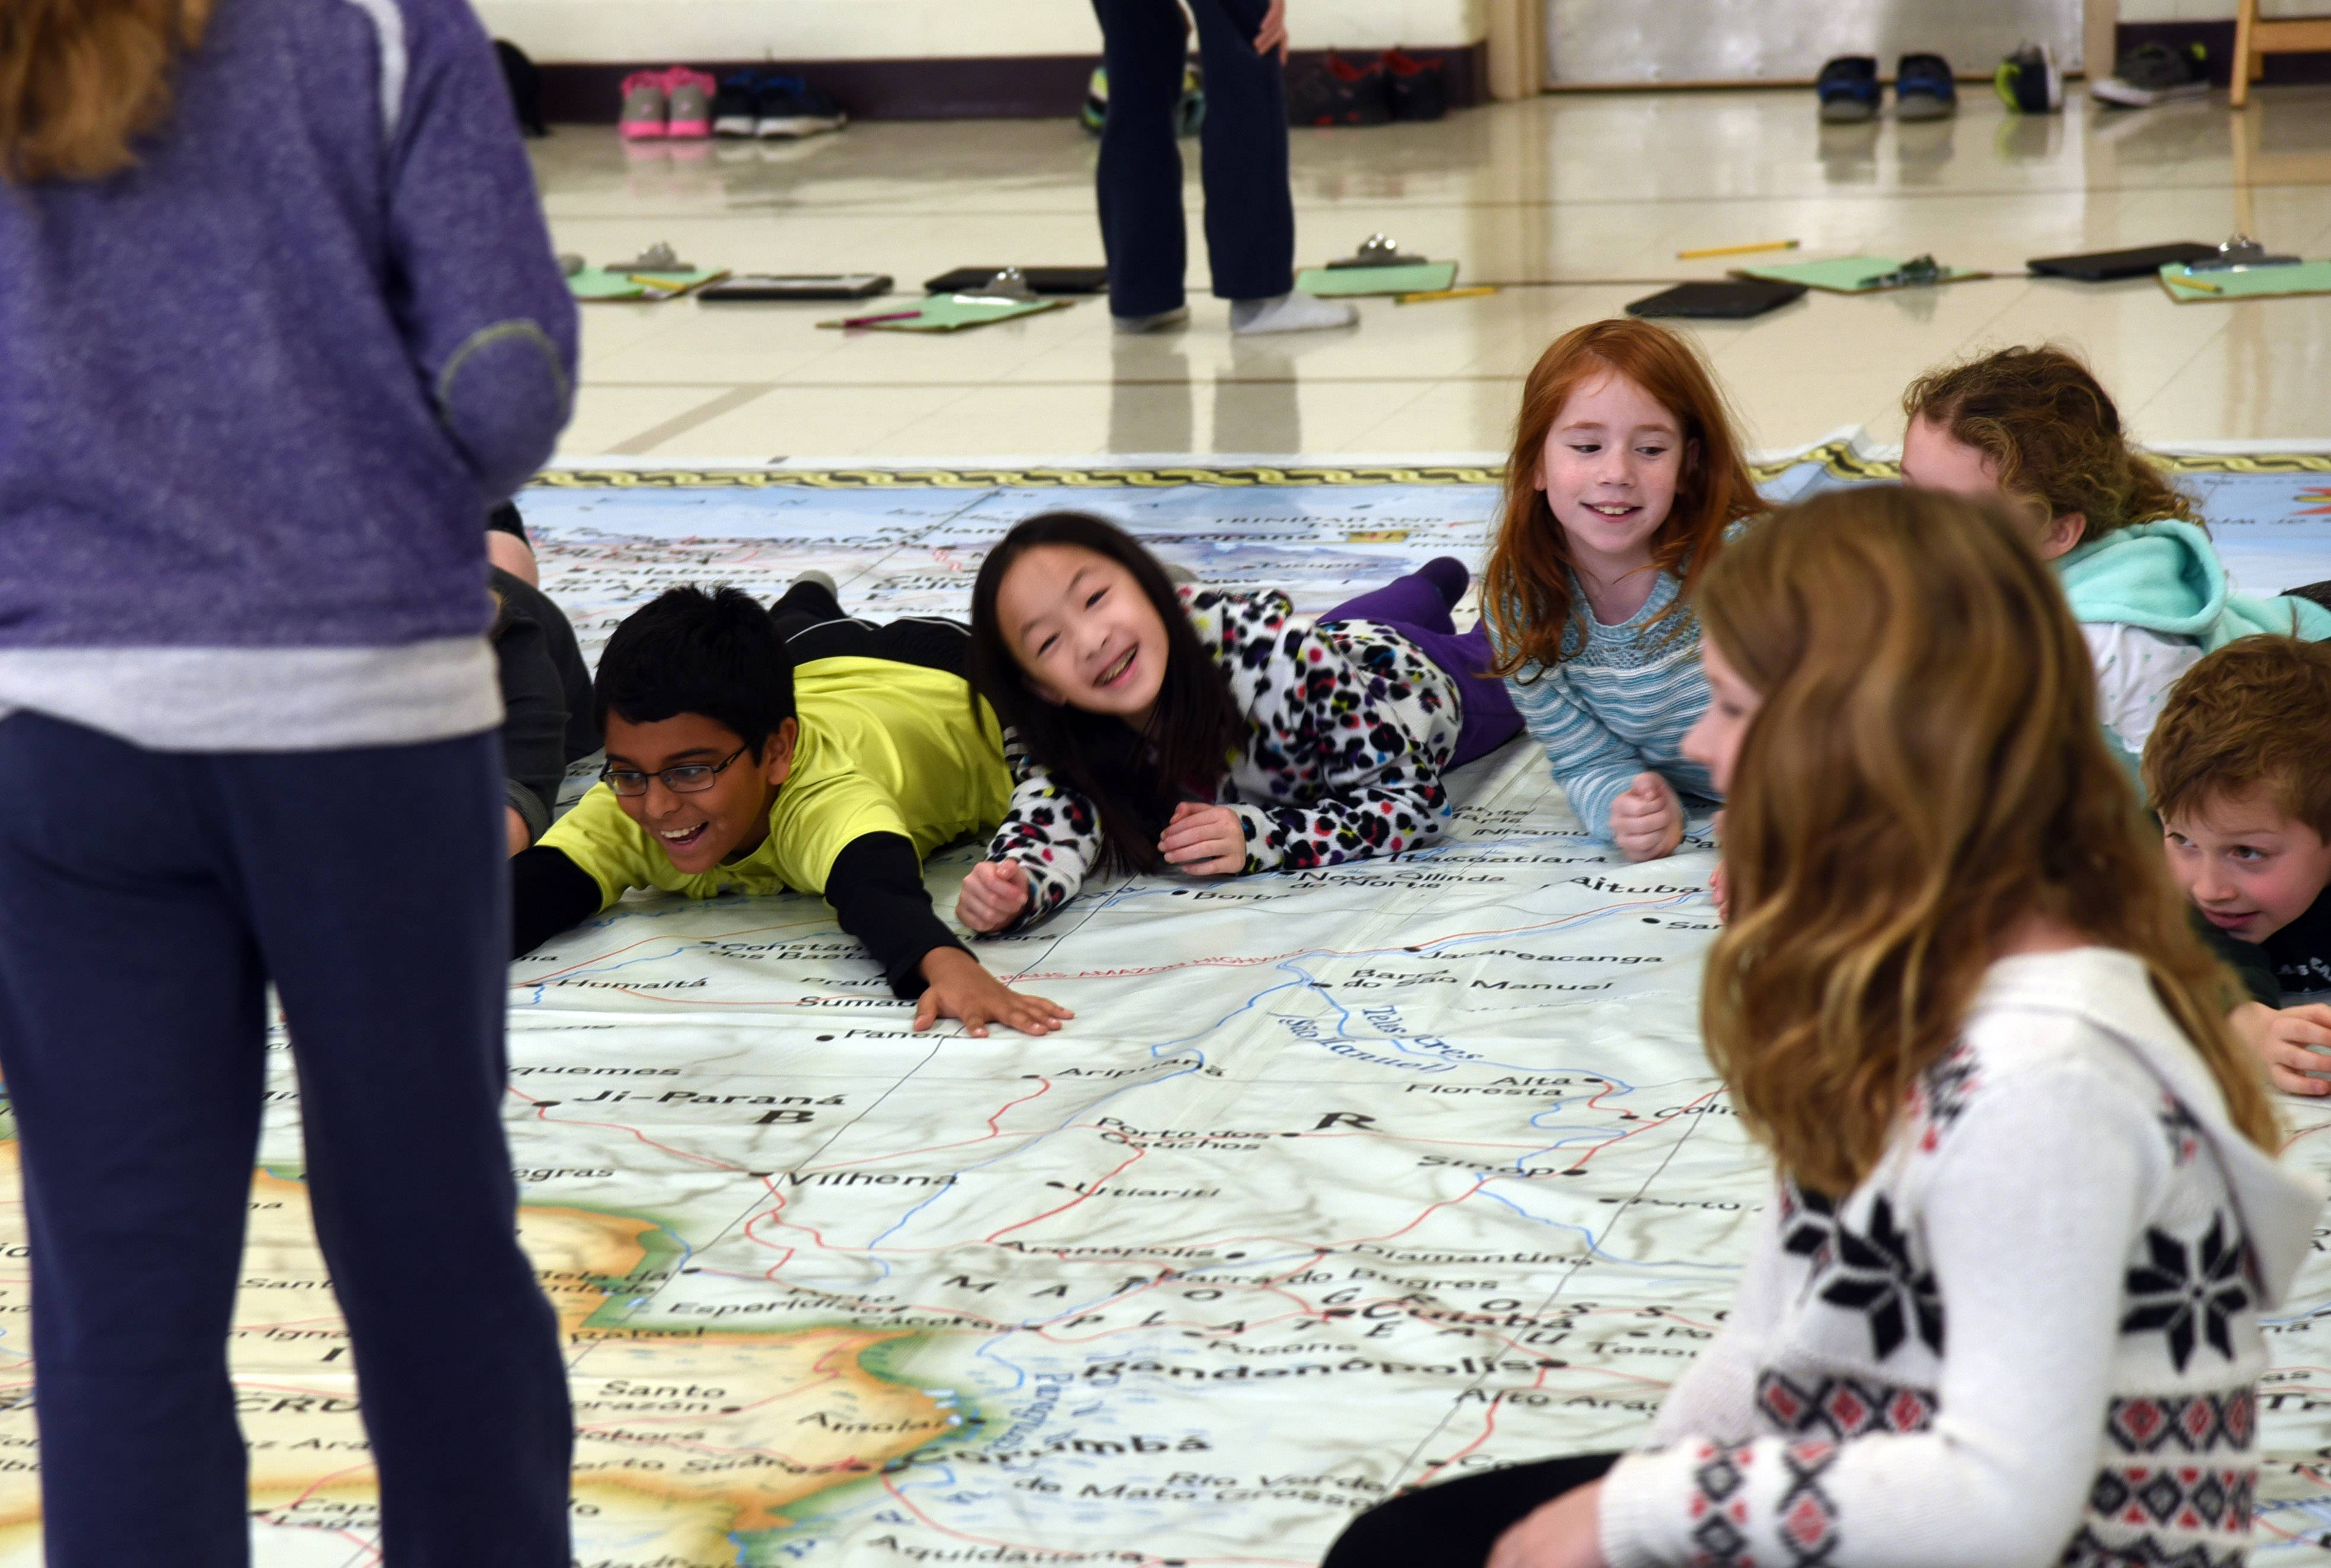 Half Day School in Lincolnshire, which serves grades three and four, on Wednesday was named a National Blue Ribbon Schools winner. Earlier this year, Half Day students pose for a photo while working with the National Geographic Society's giant map of South America.